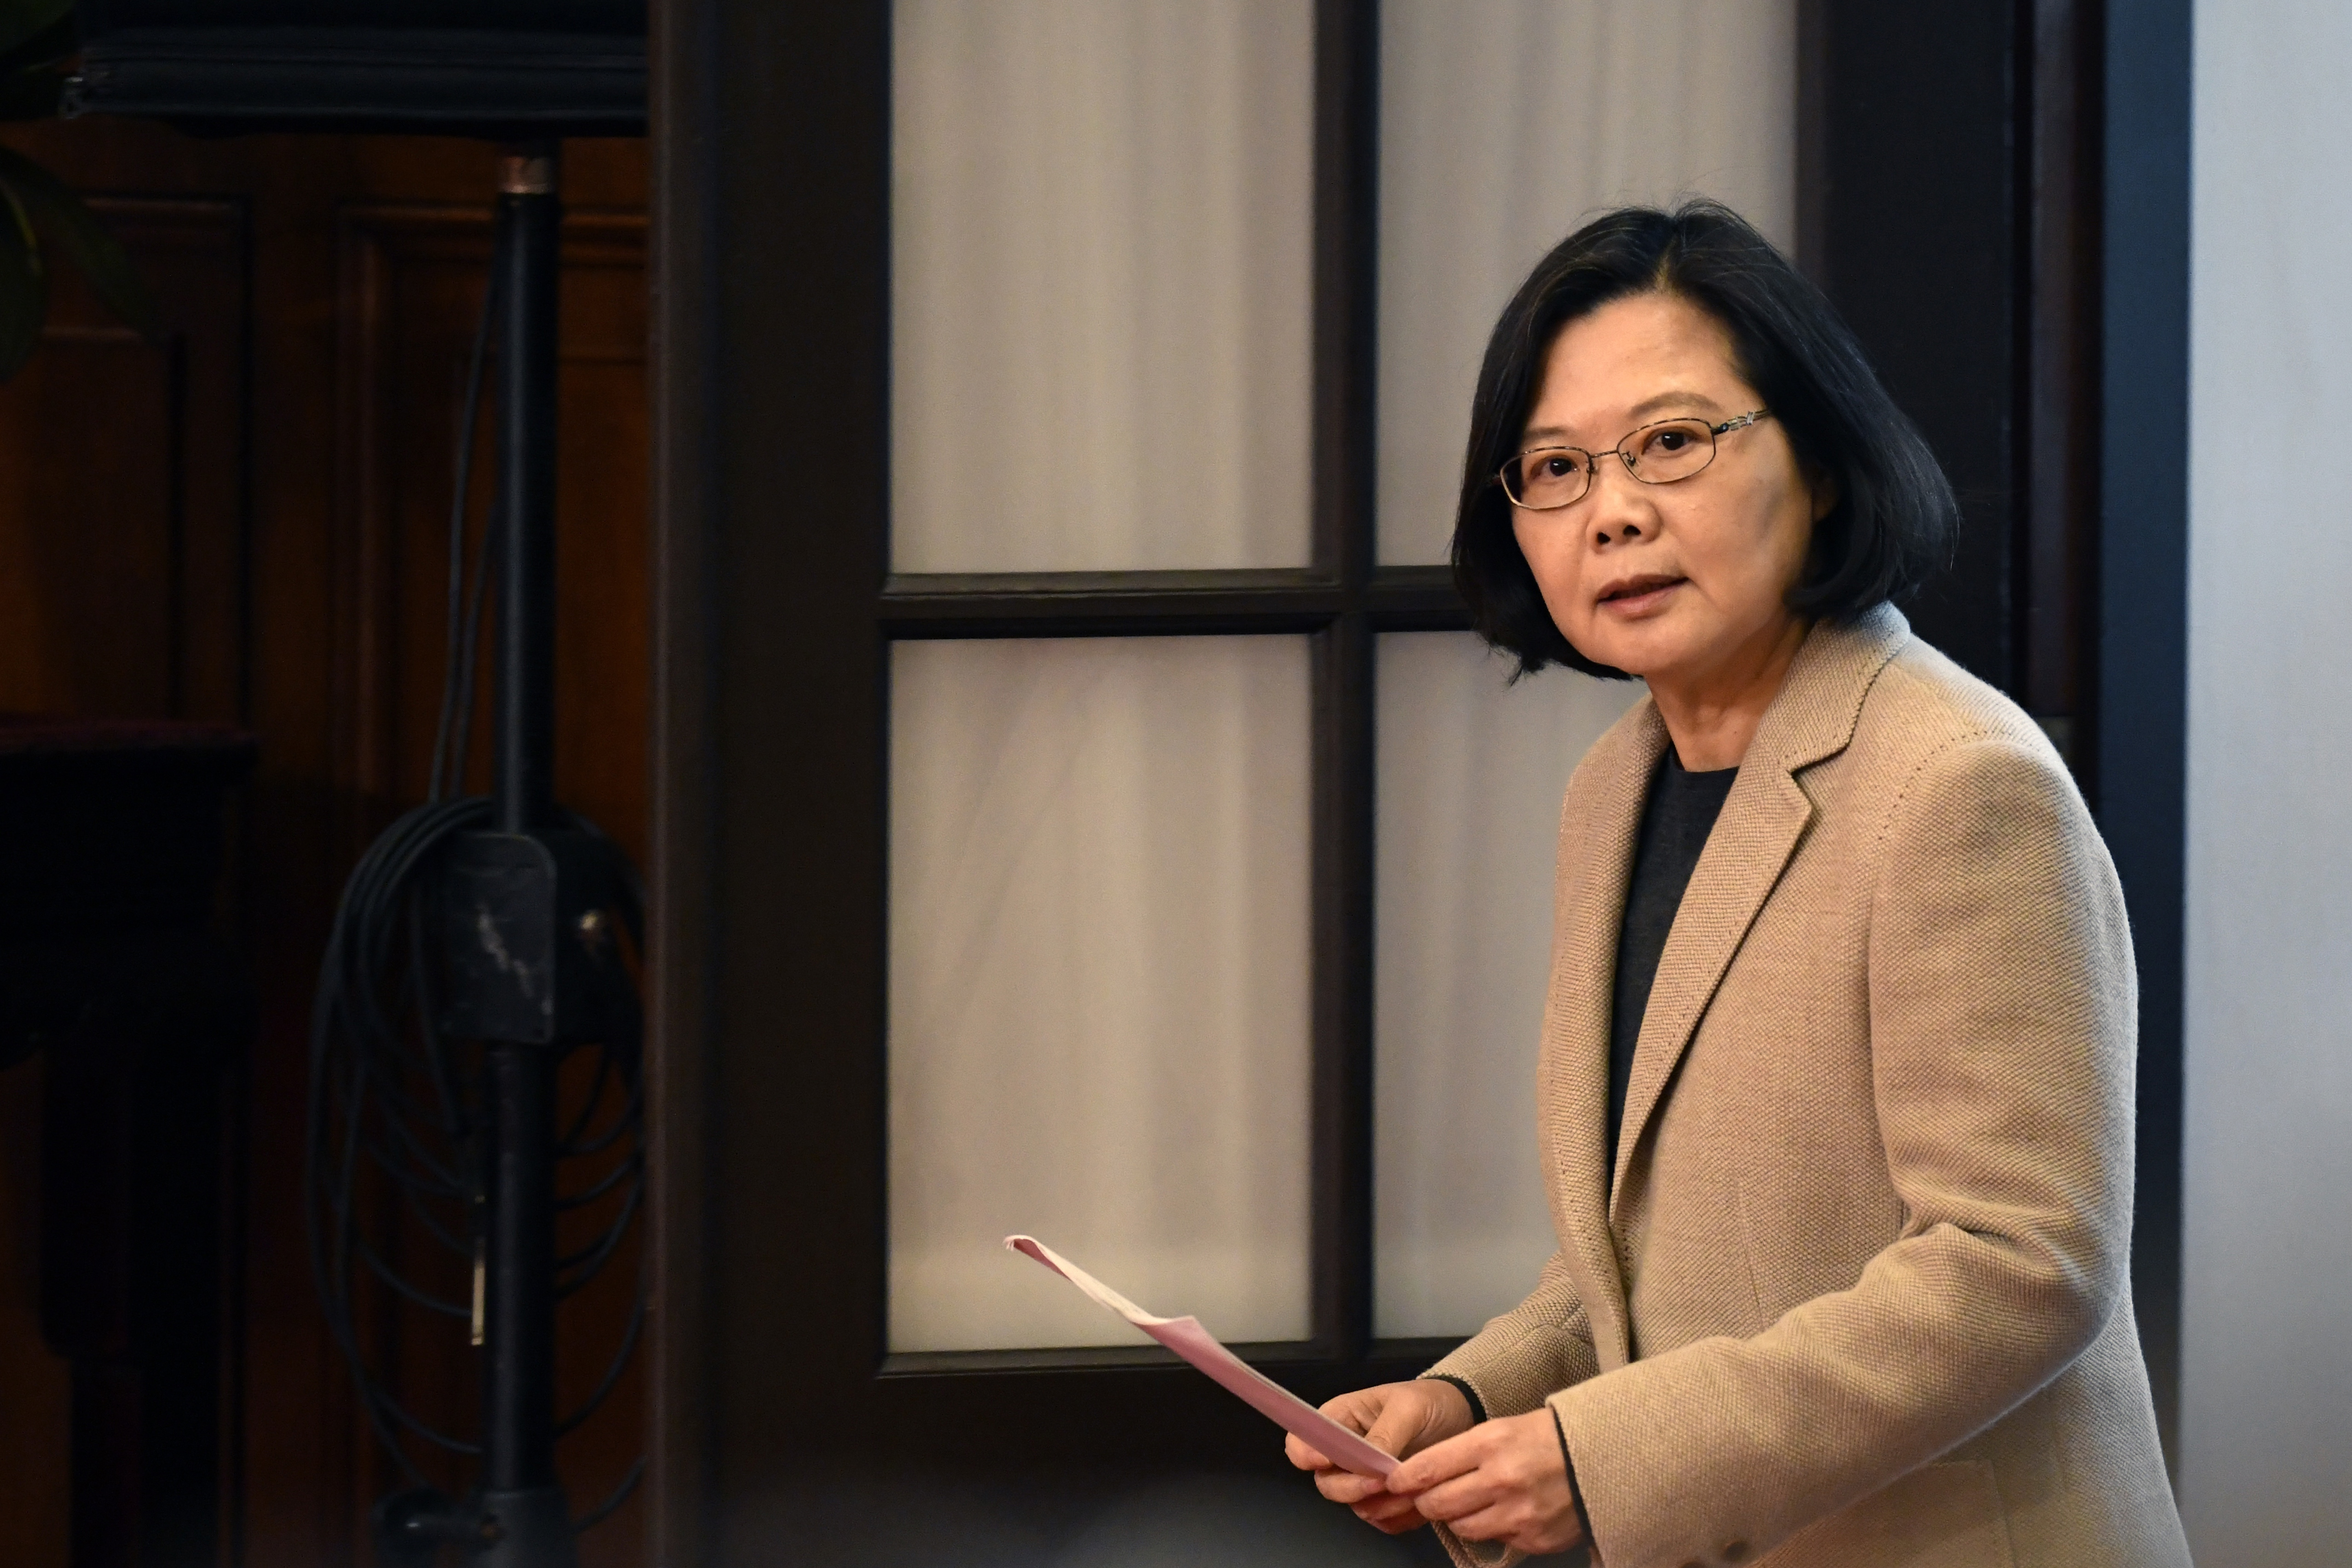 Taiwan's President Tsai Ing-wen arrives for a press conference at the Presidential Palace after the national flag raising ceremony in Taipei on January 1, 2019. (Photo by Sam YEH / AFP)